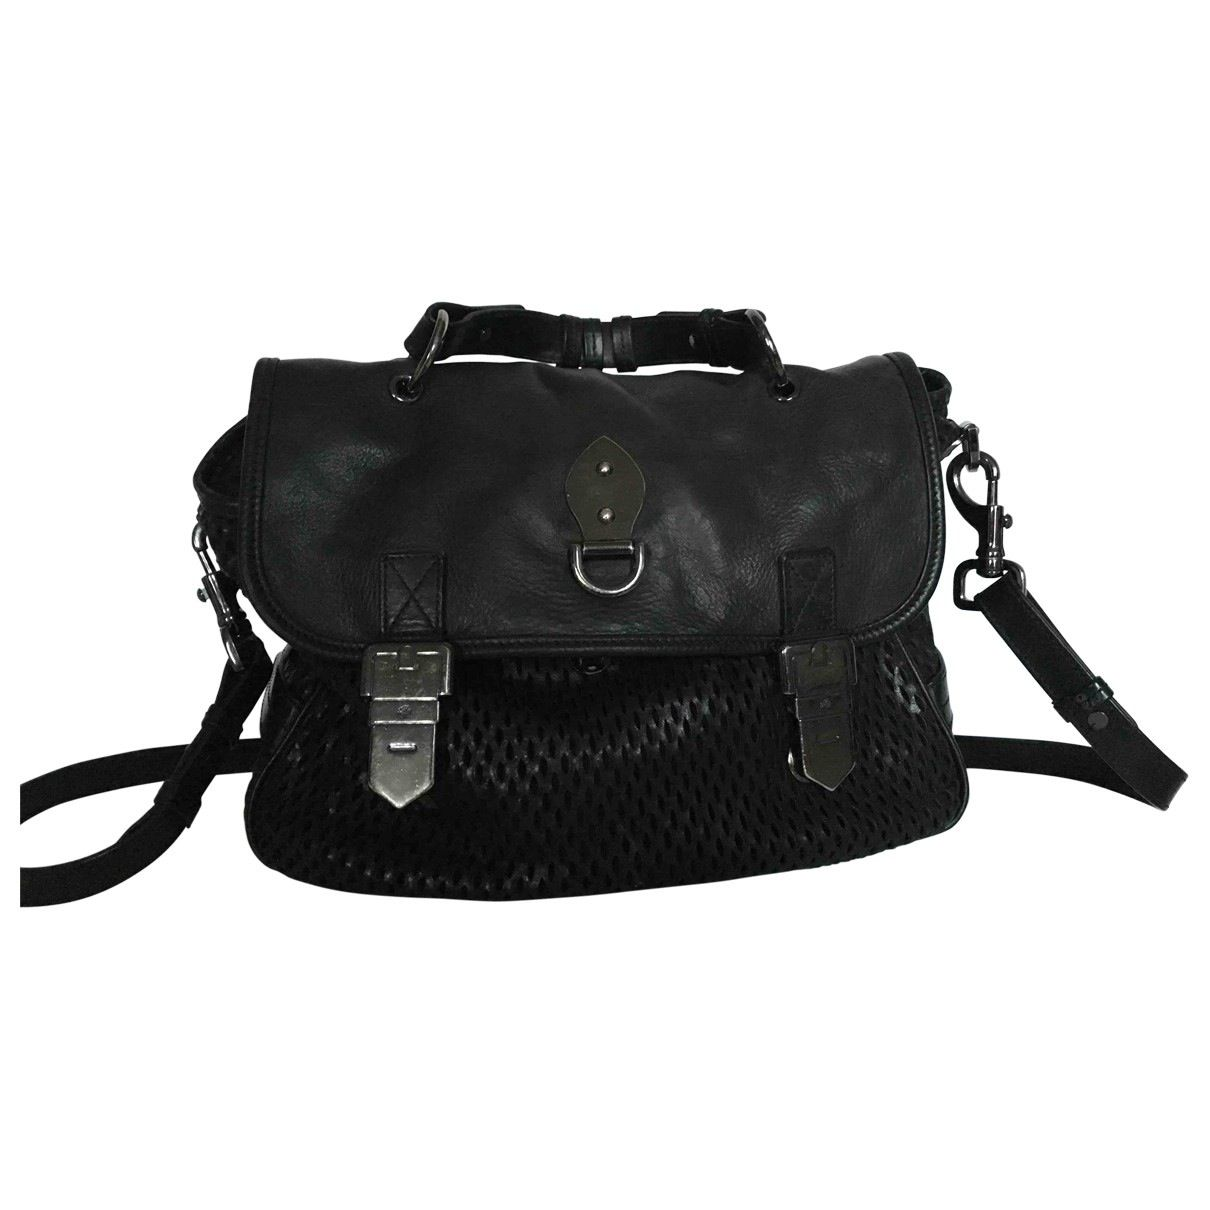 d19f13a12189 ... cheap authentic preloved mulberry regular alexa in black polished  buffalo with silver nickel hardware bags pinterest ...